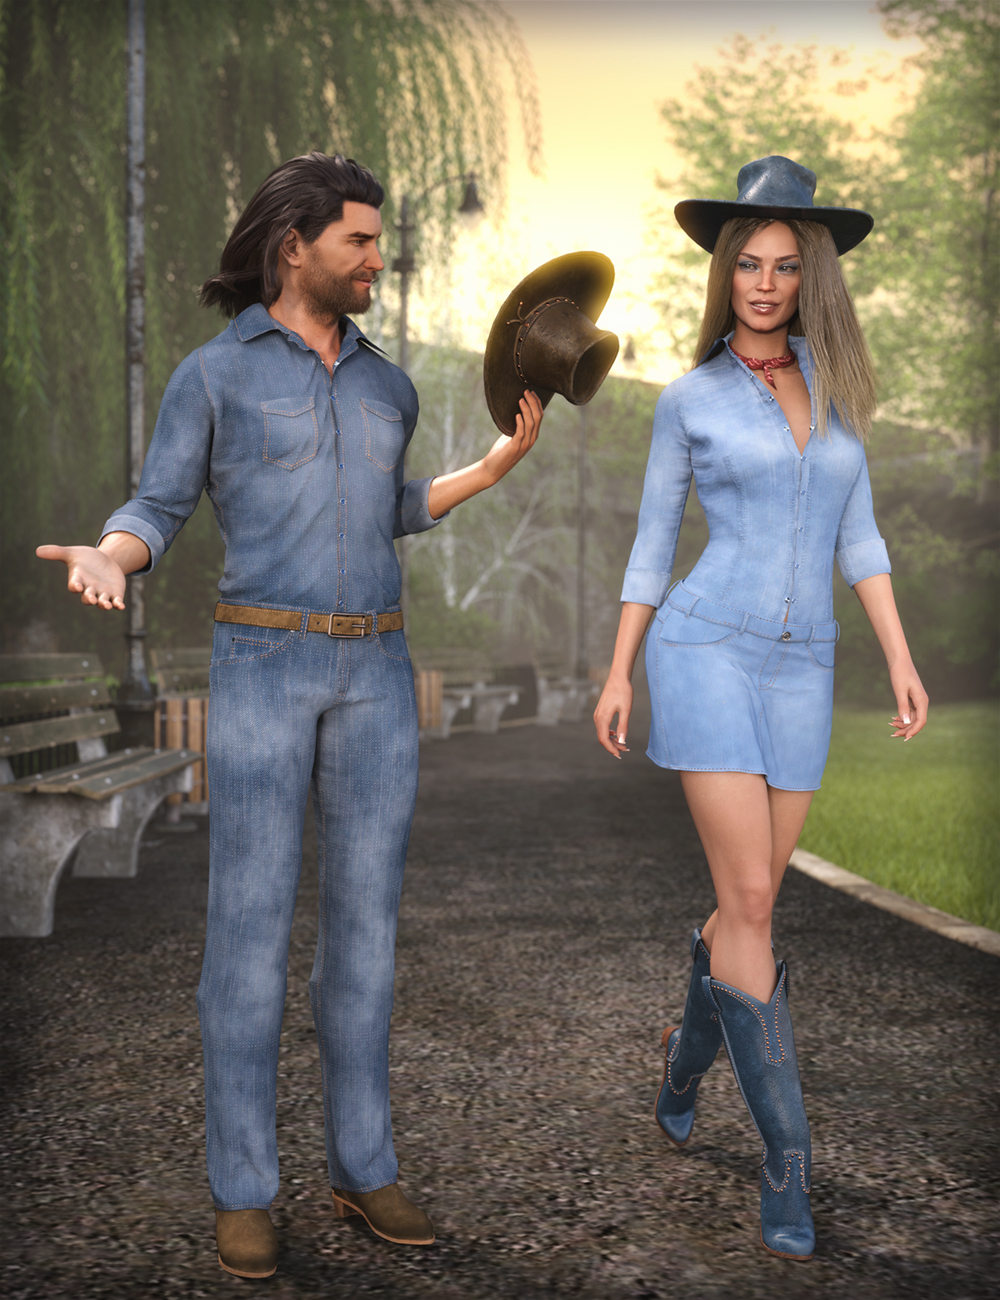 MD dForce Classic Jeans Outfit for Genesis 8 and 8.1 Bundle by: MikeD, 3D Models by Daz 3D